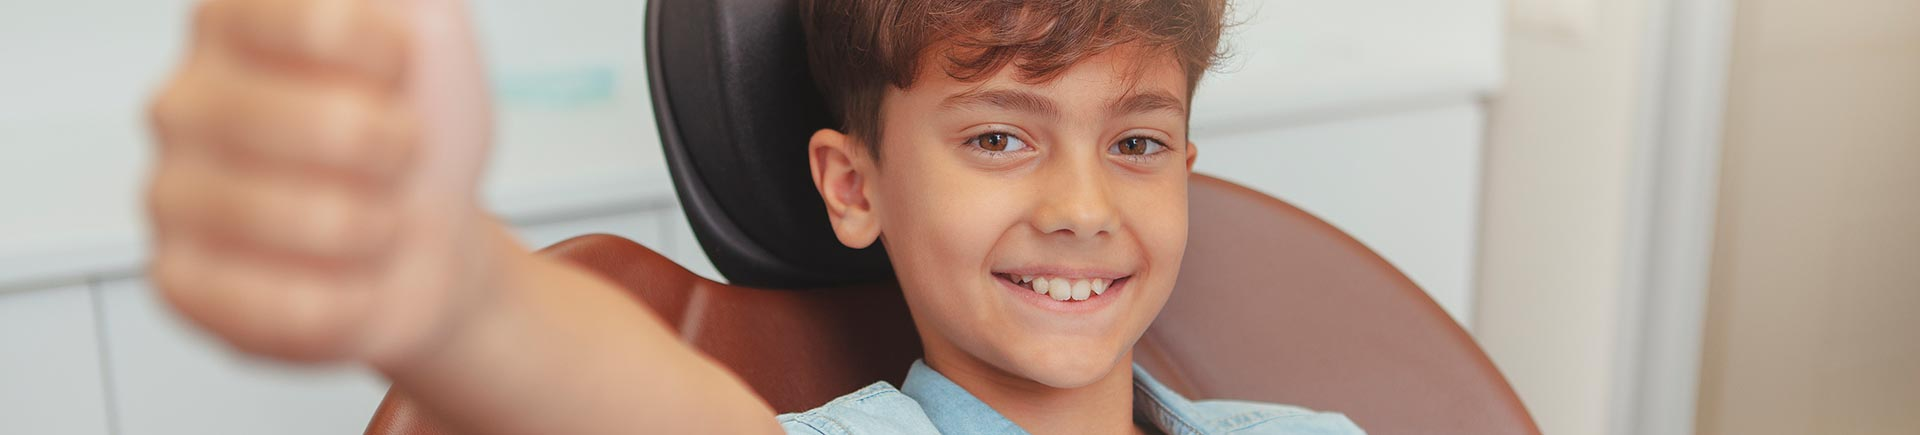 Cheerful young boy smiling in a dental chair showing his thumb up.